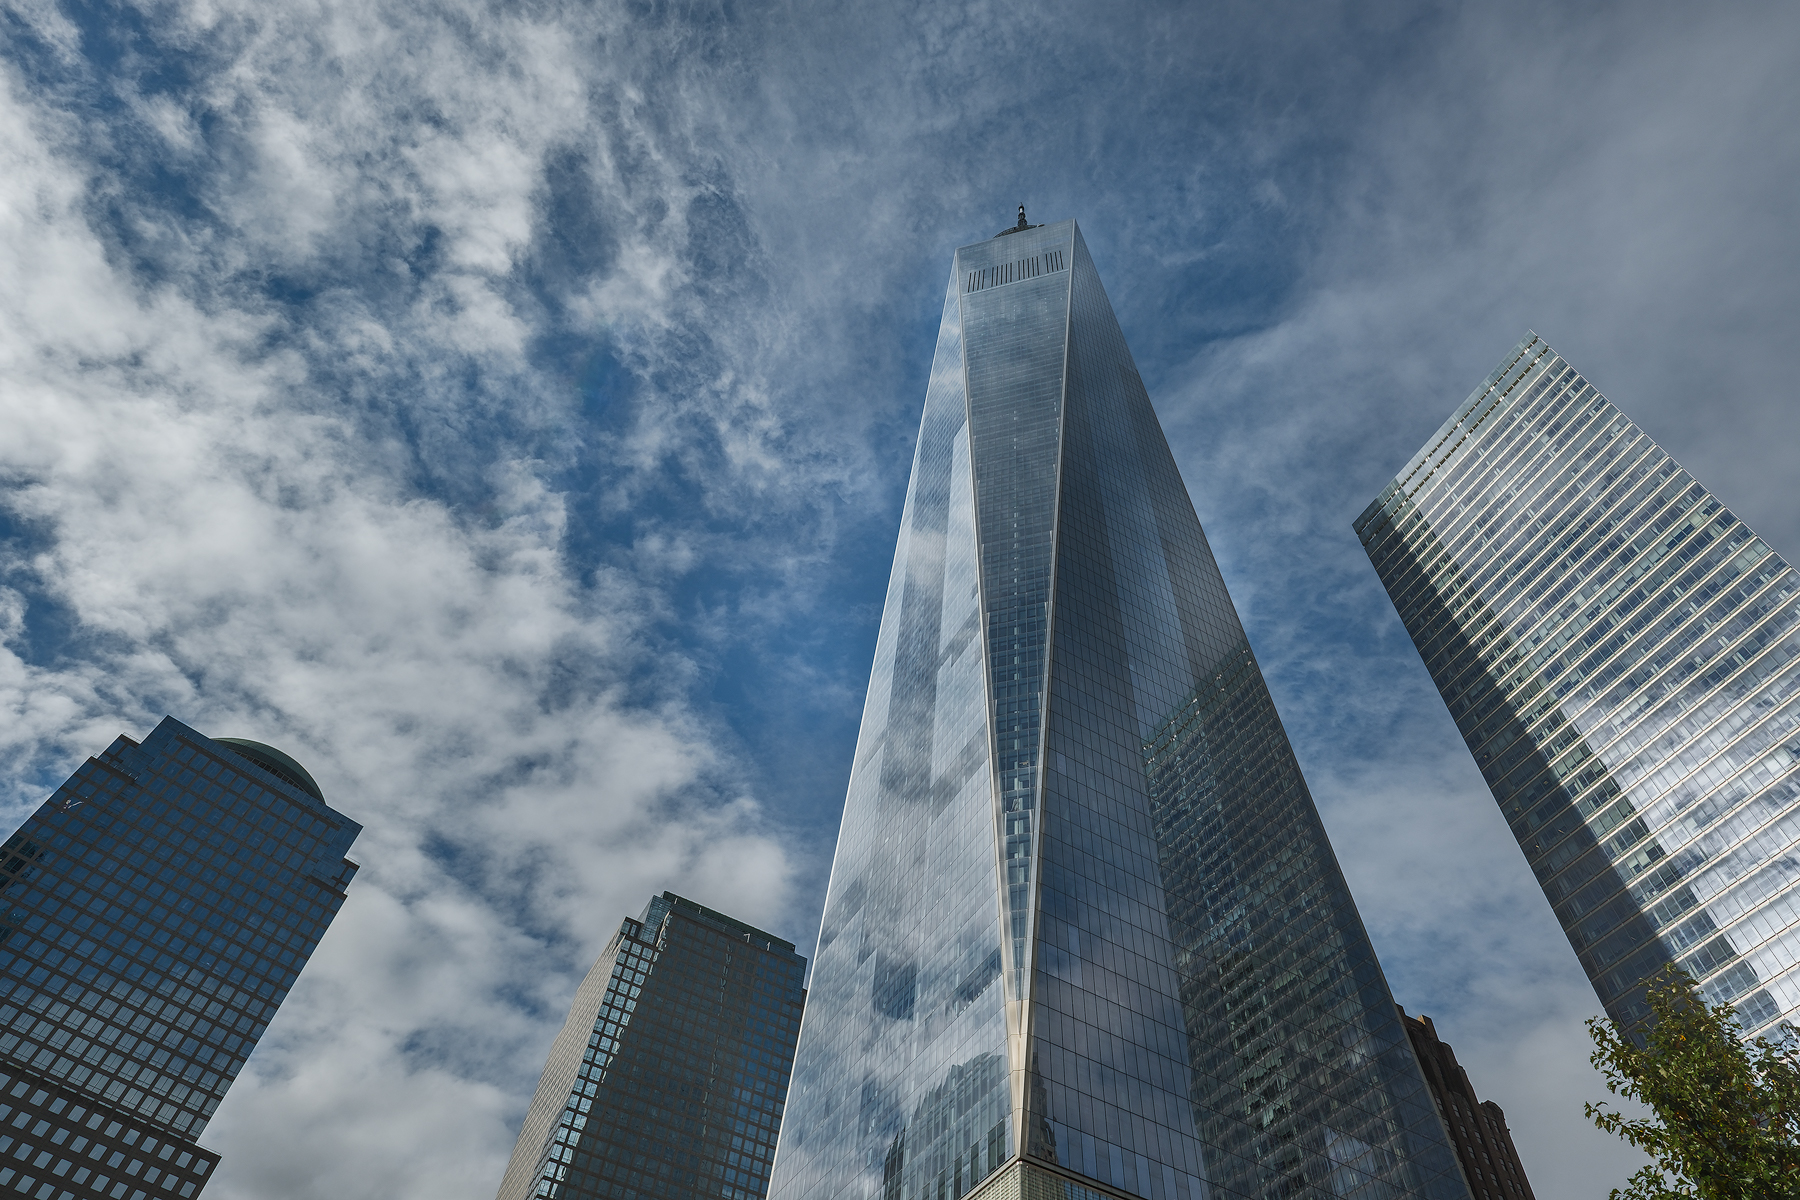 The view of One World Trade Center from the Oculus.